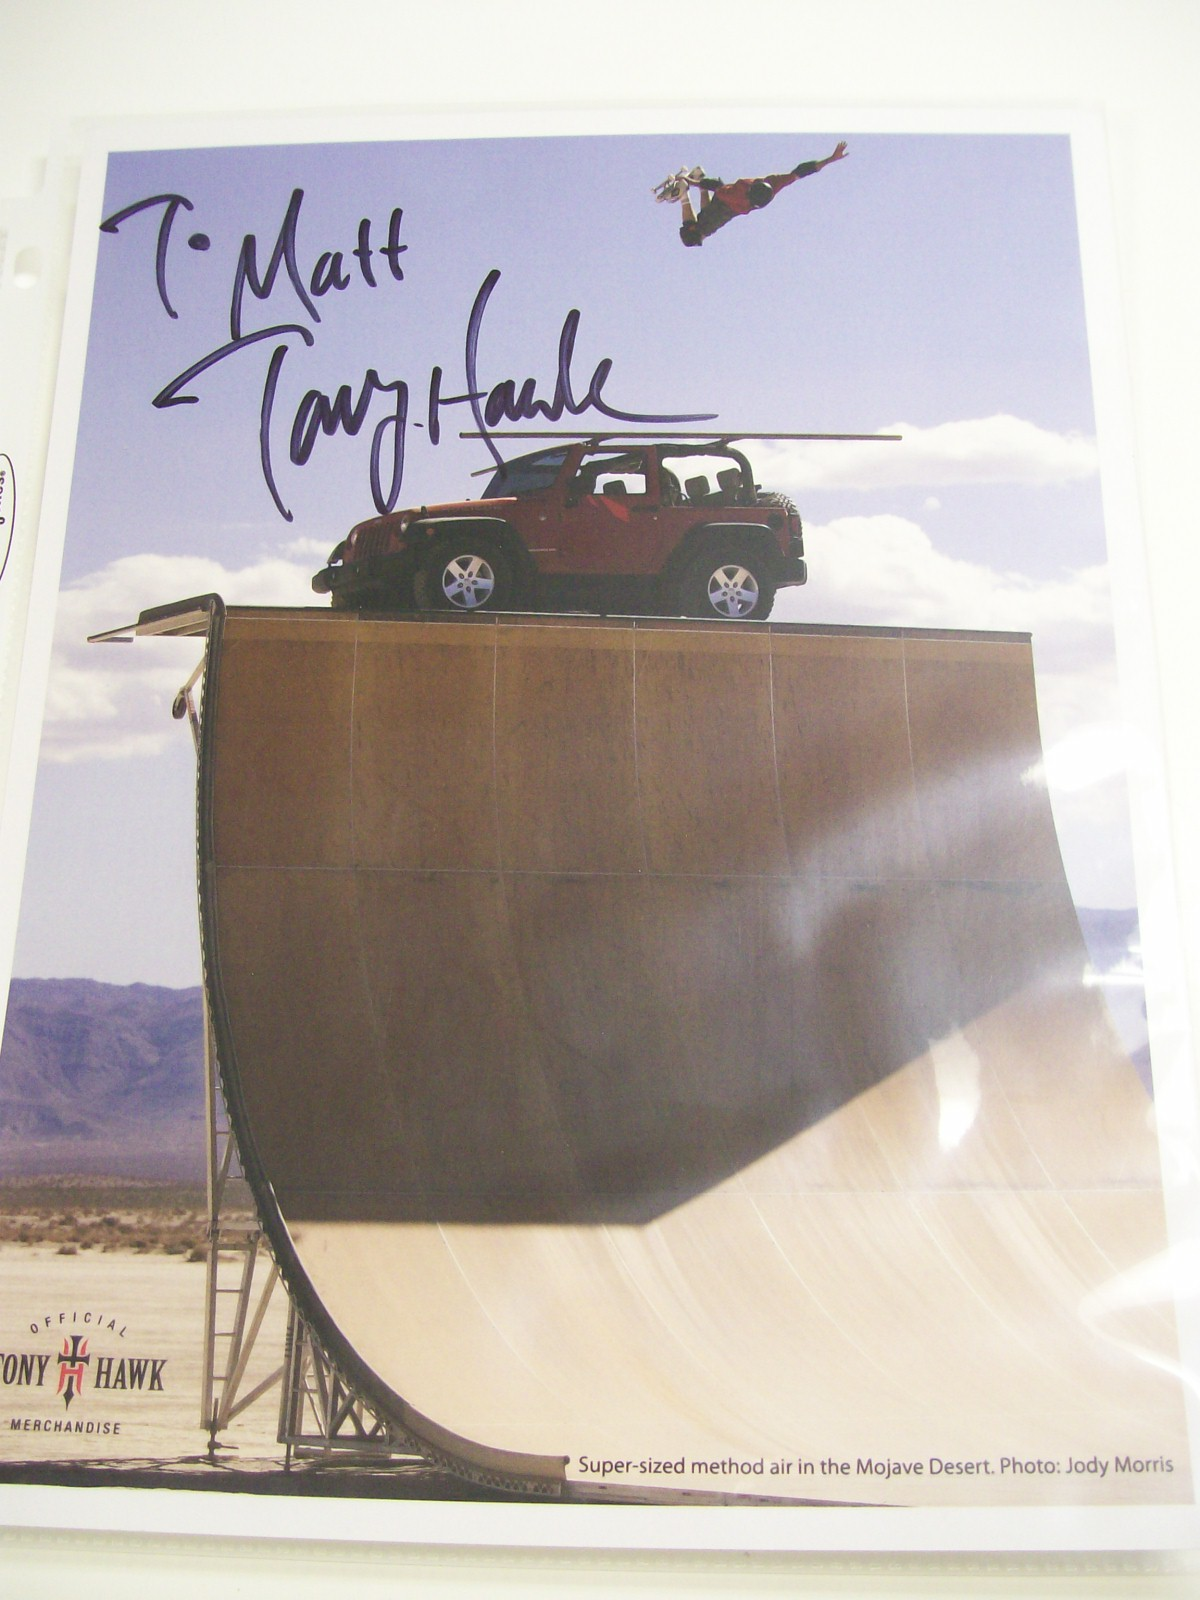 Tony Hawk Autographed Official Merchandise Photo of him flying